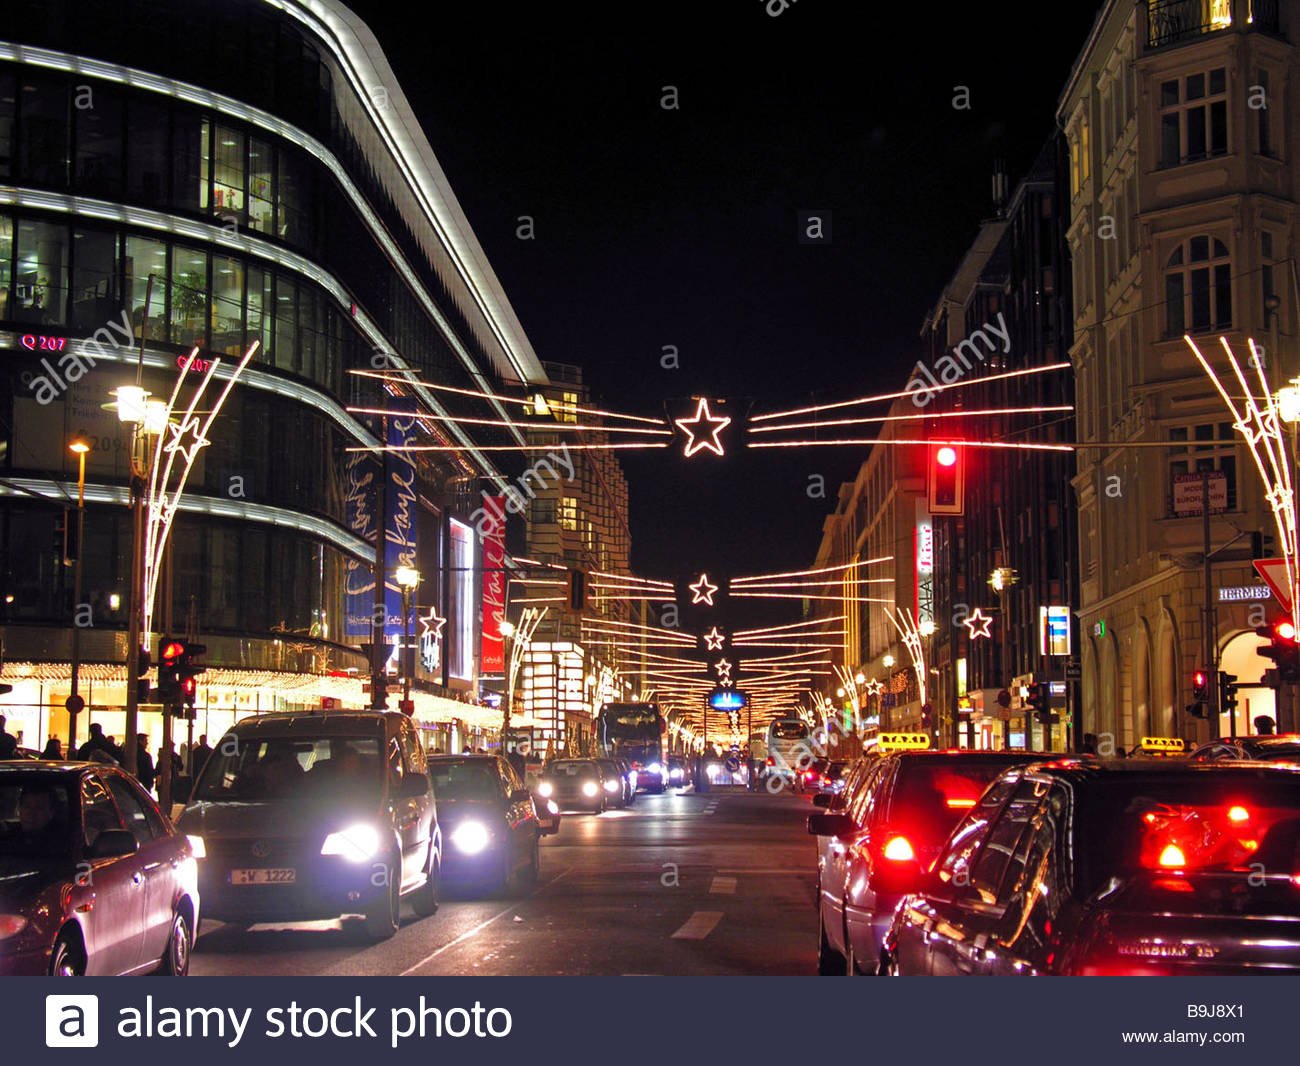 germany berlin friedrich street christmas illumination traffic stock photo royalty free image. Black Bedroom Furniture Sets. Home Design Ideas